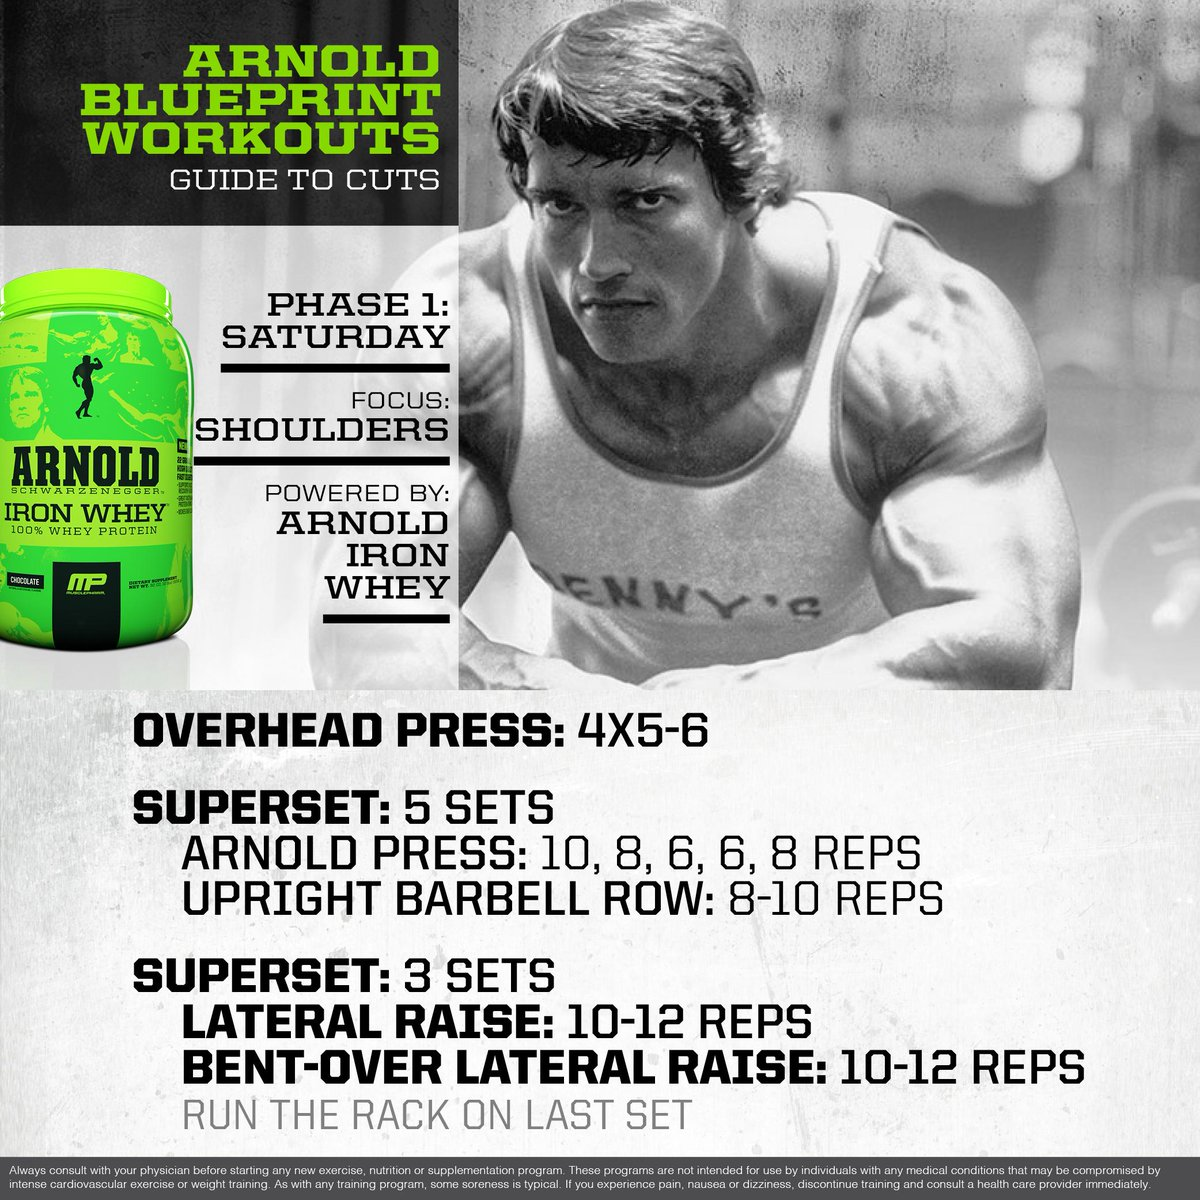 Musclepharm on twitter mp workout of the day arnold musclepharm on twitter mp workout of the day arnold schwarzenegger blueprint to cut shoulder workout powered by ironwhey httptev1aginmut malvernweather Image collections